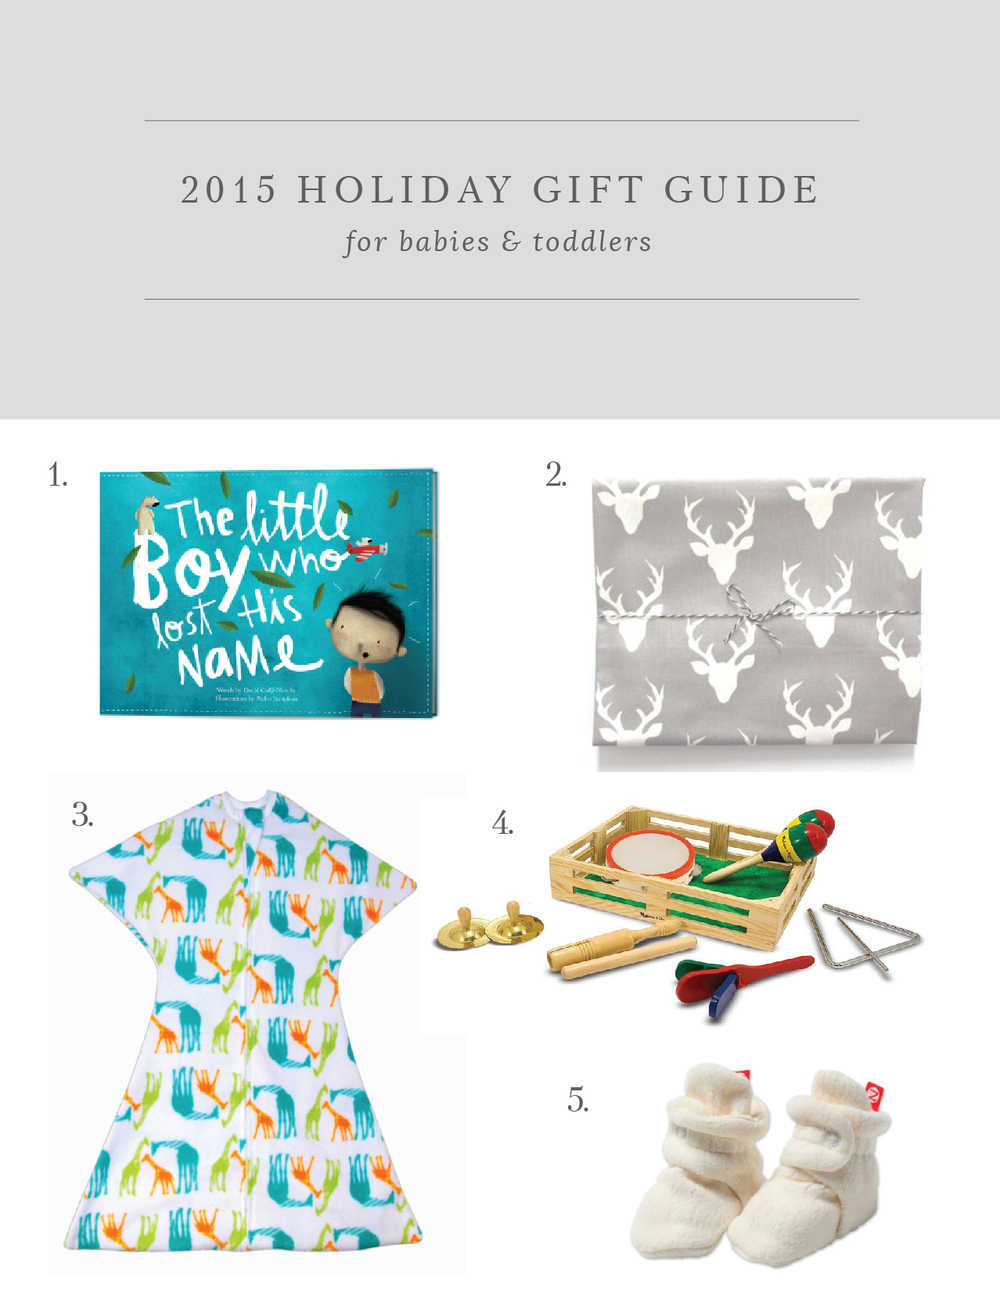 holiday-gift-guide-for-babies.jpg